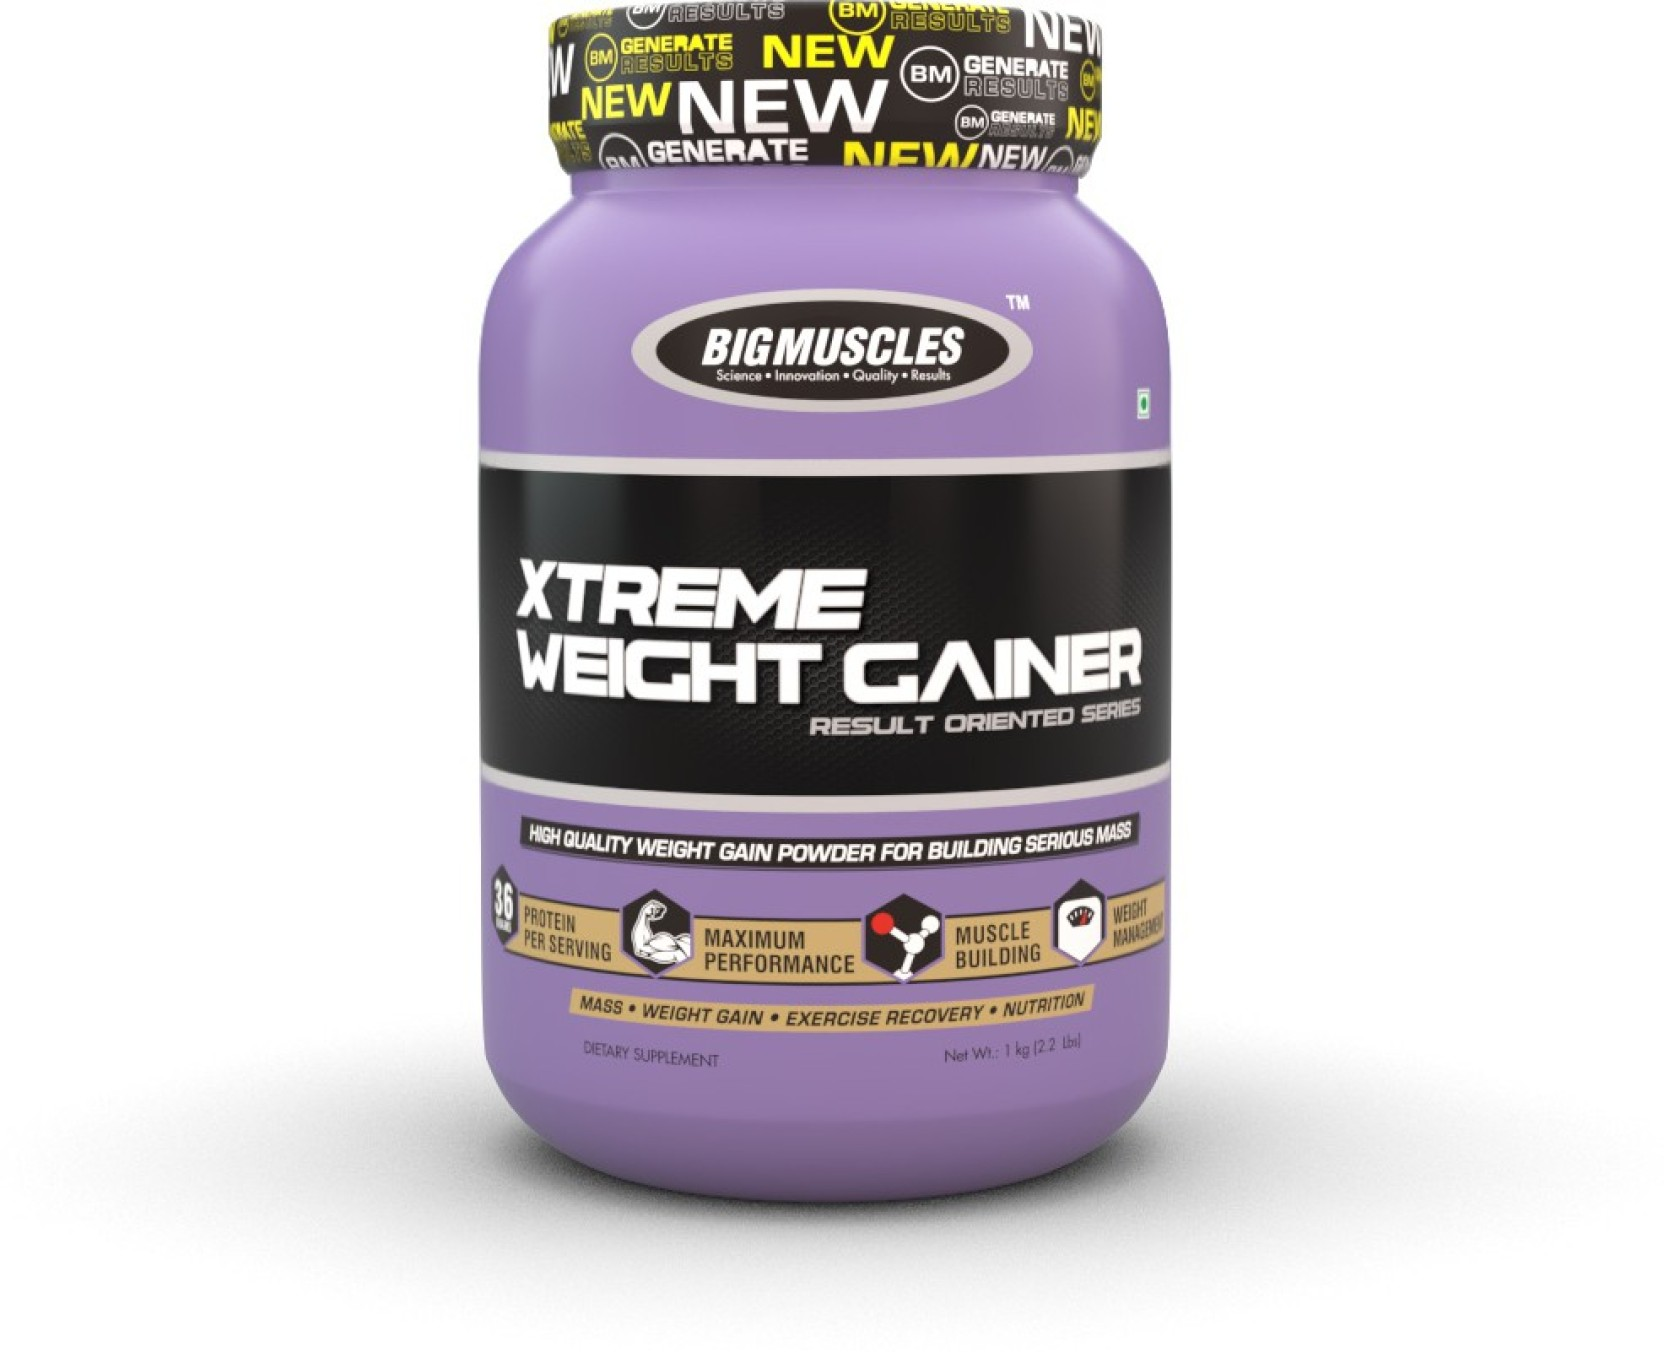 Big Muscles Xtreme Weight Gainer Gainers Mass Price Serious 12lbs Optimum Nutrition Add To Cart